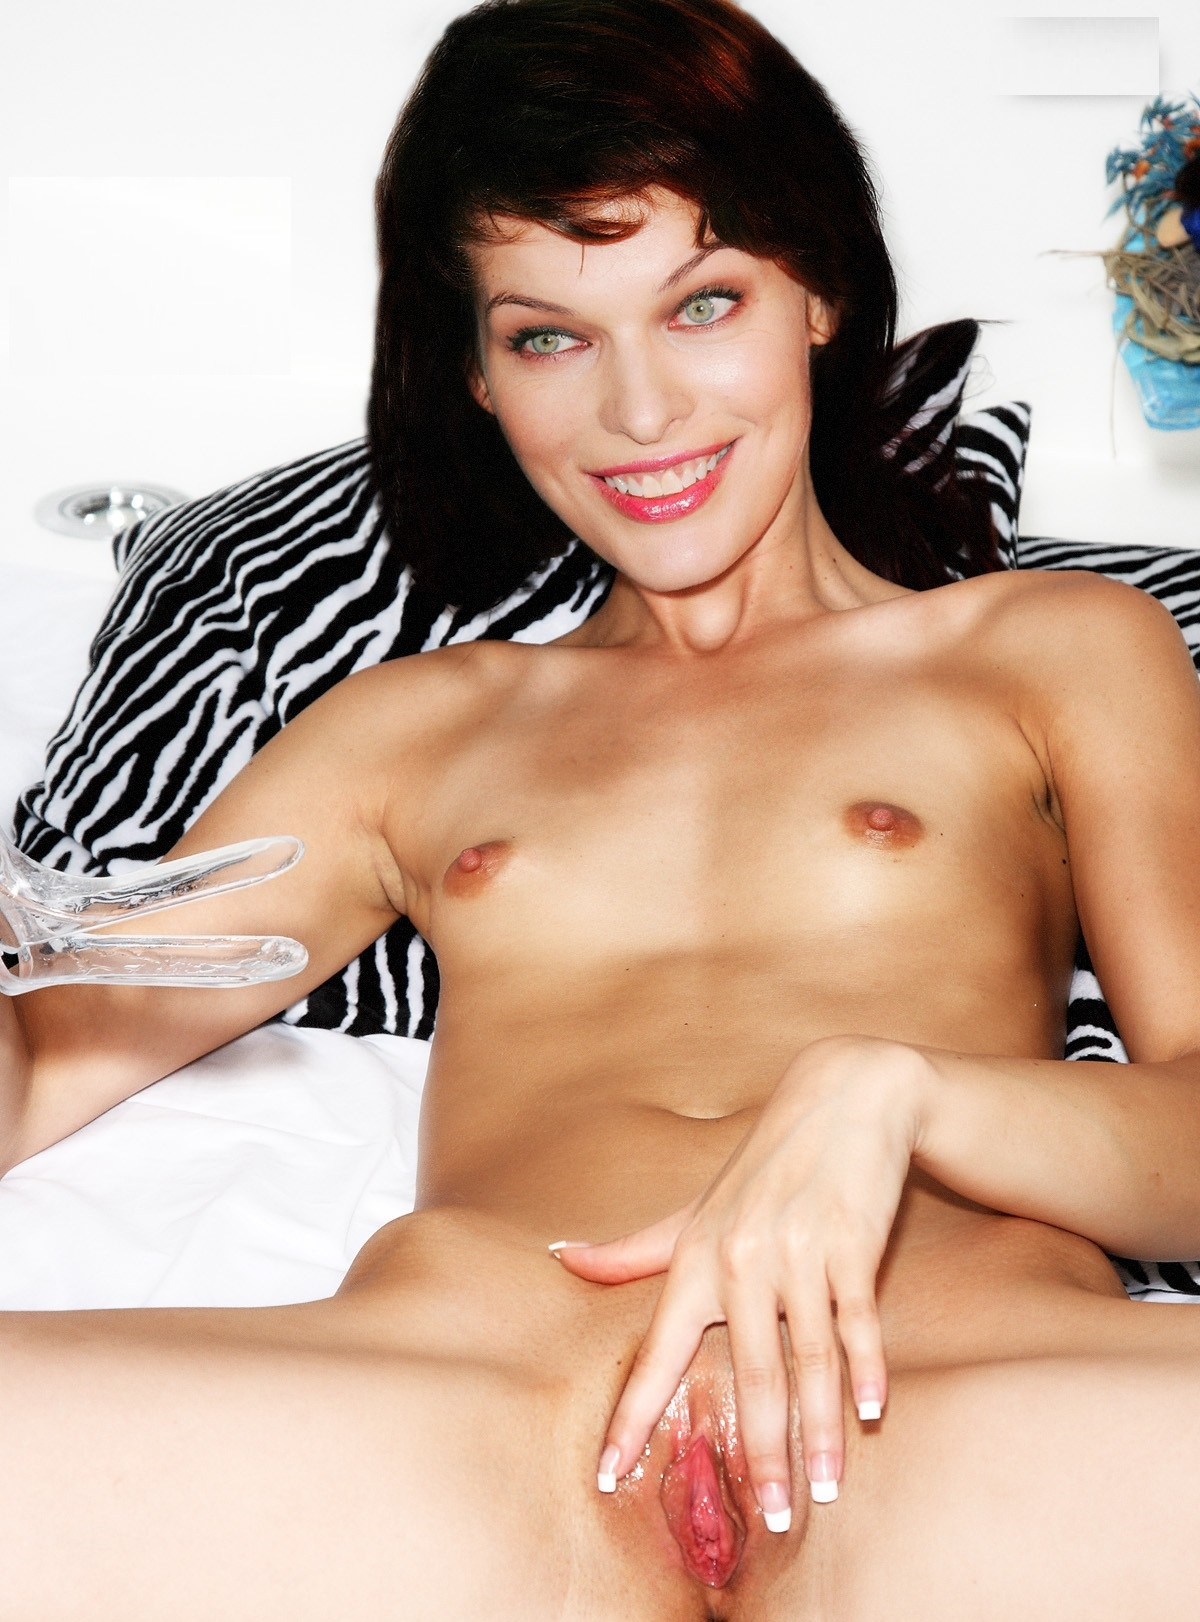 Sex Images Actress Milla Jovovich Nude Pics Hdp Pxx Without